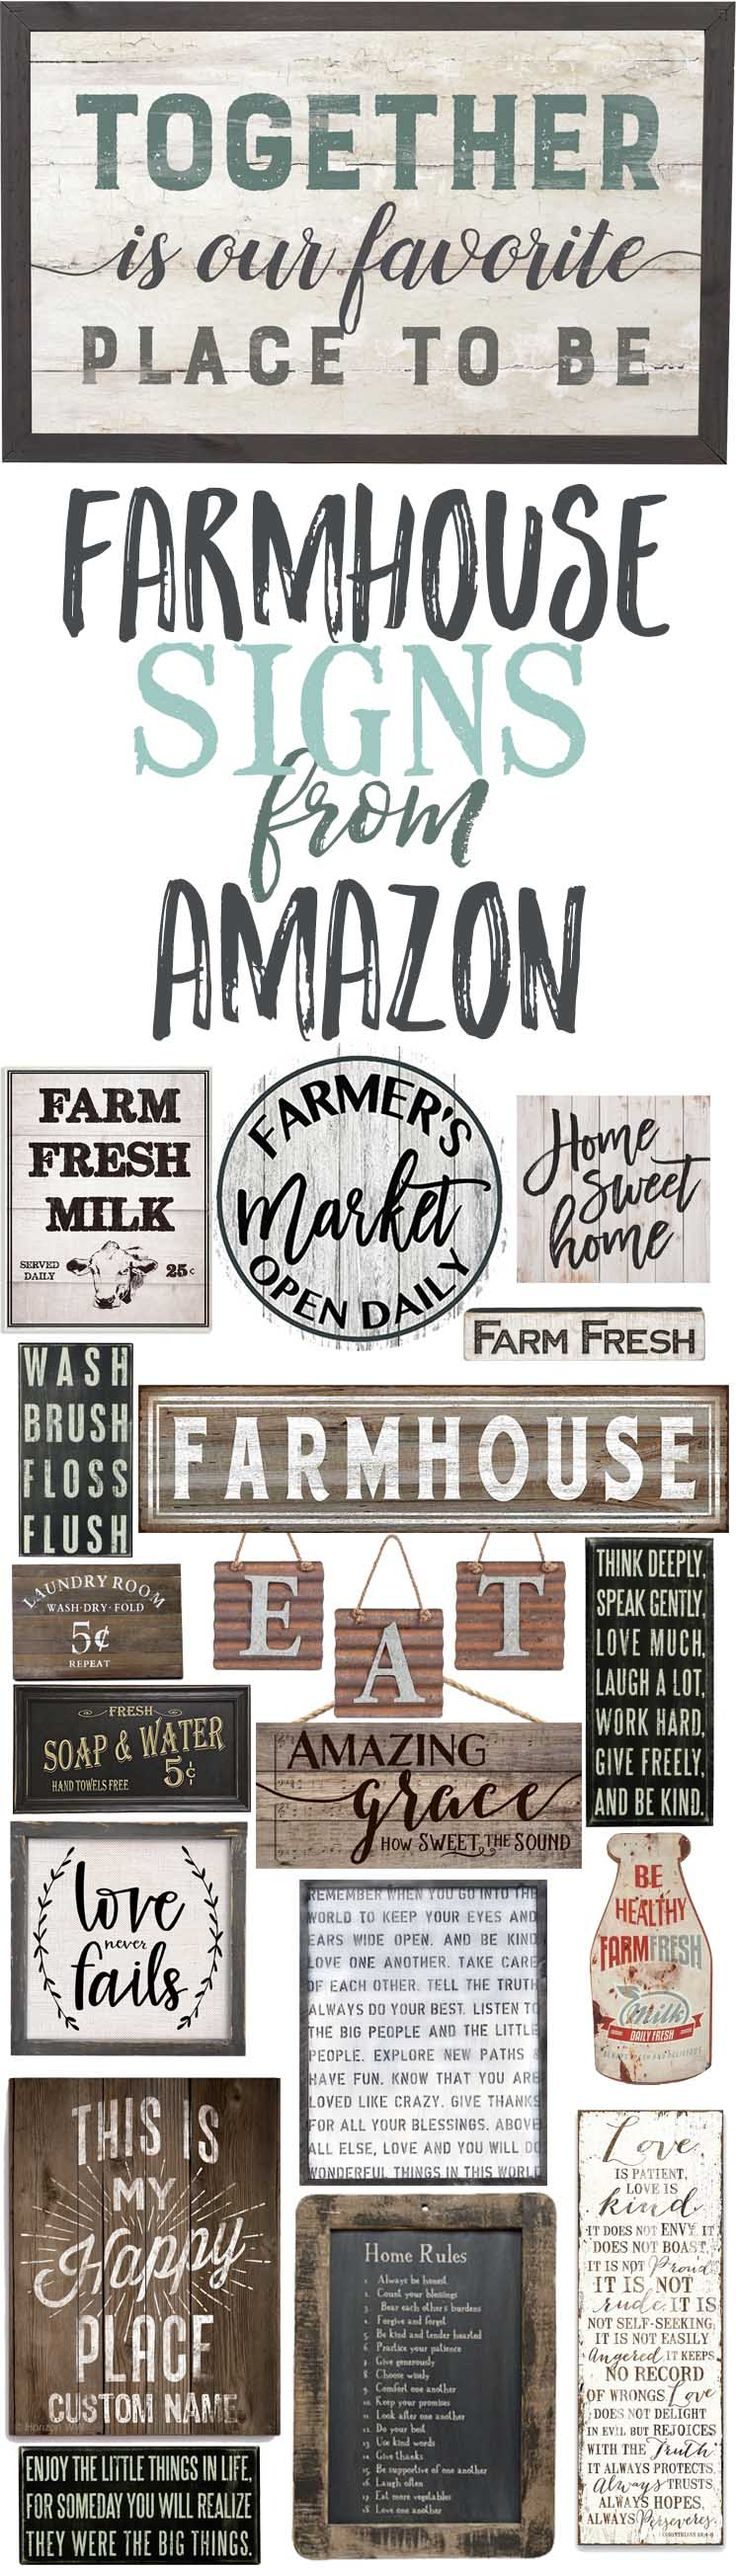 Farmhouse Signs From Amazon-Farmhouse Sign Ideas-Where to buy farmhouse signs